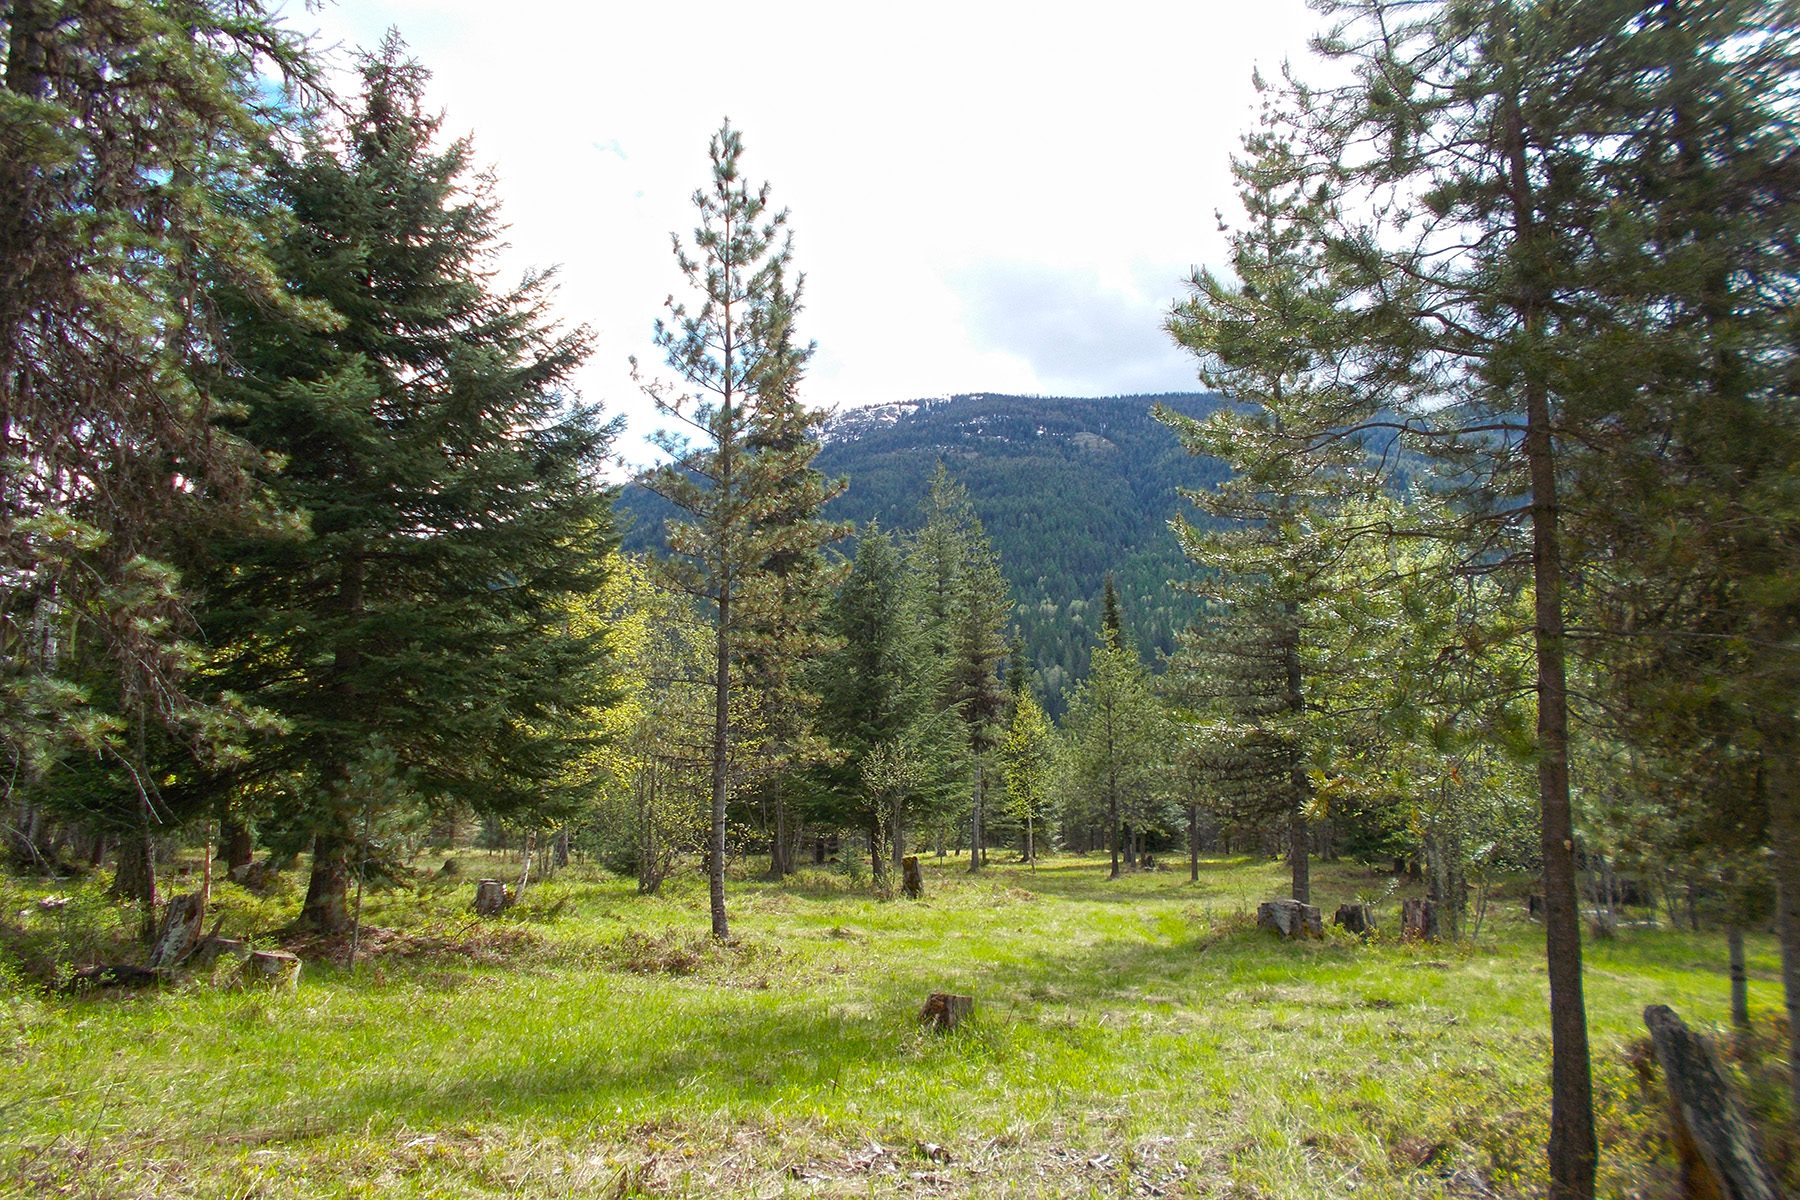 Terreno para Venda às 28+ acres bordering National Forest NNA 28 acres off Moyie River Road Eastport, Idaho, 83826 Estados Unidos